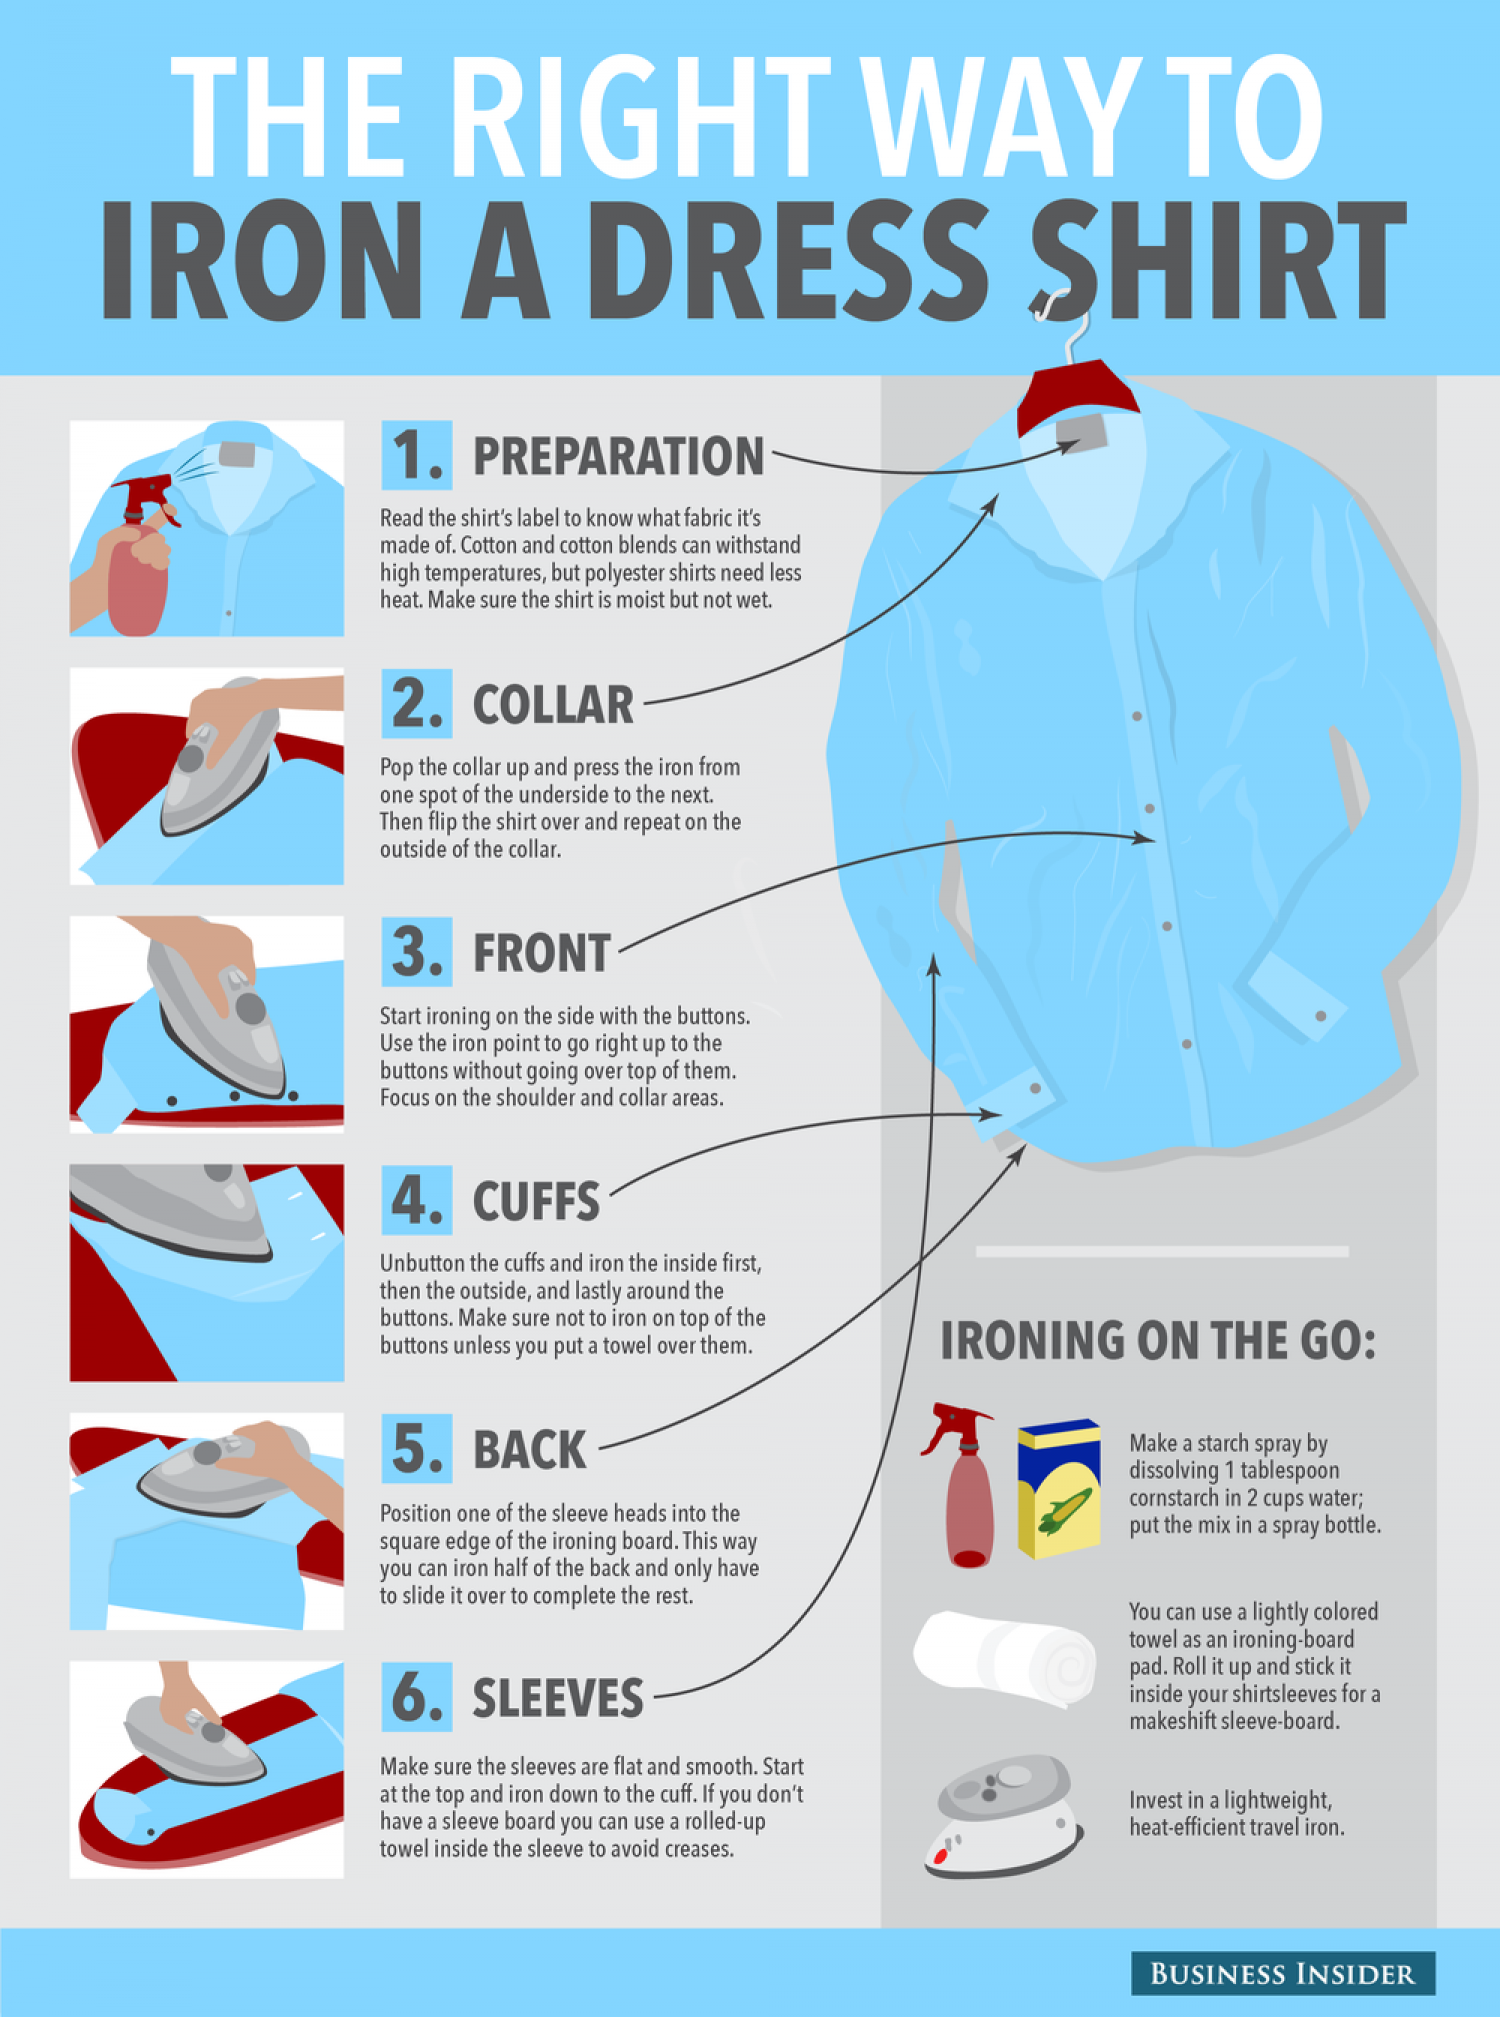 The right way to iron a dress shirt | Visual.ly